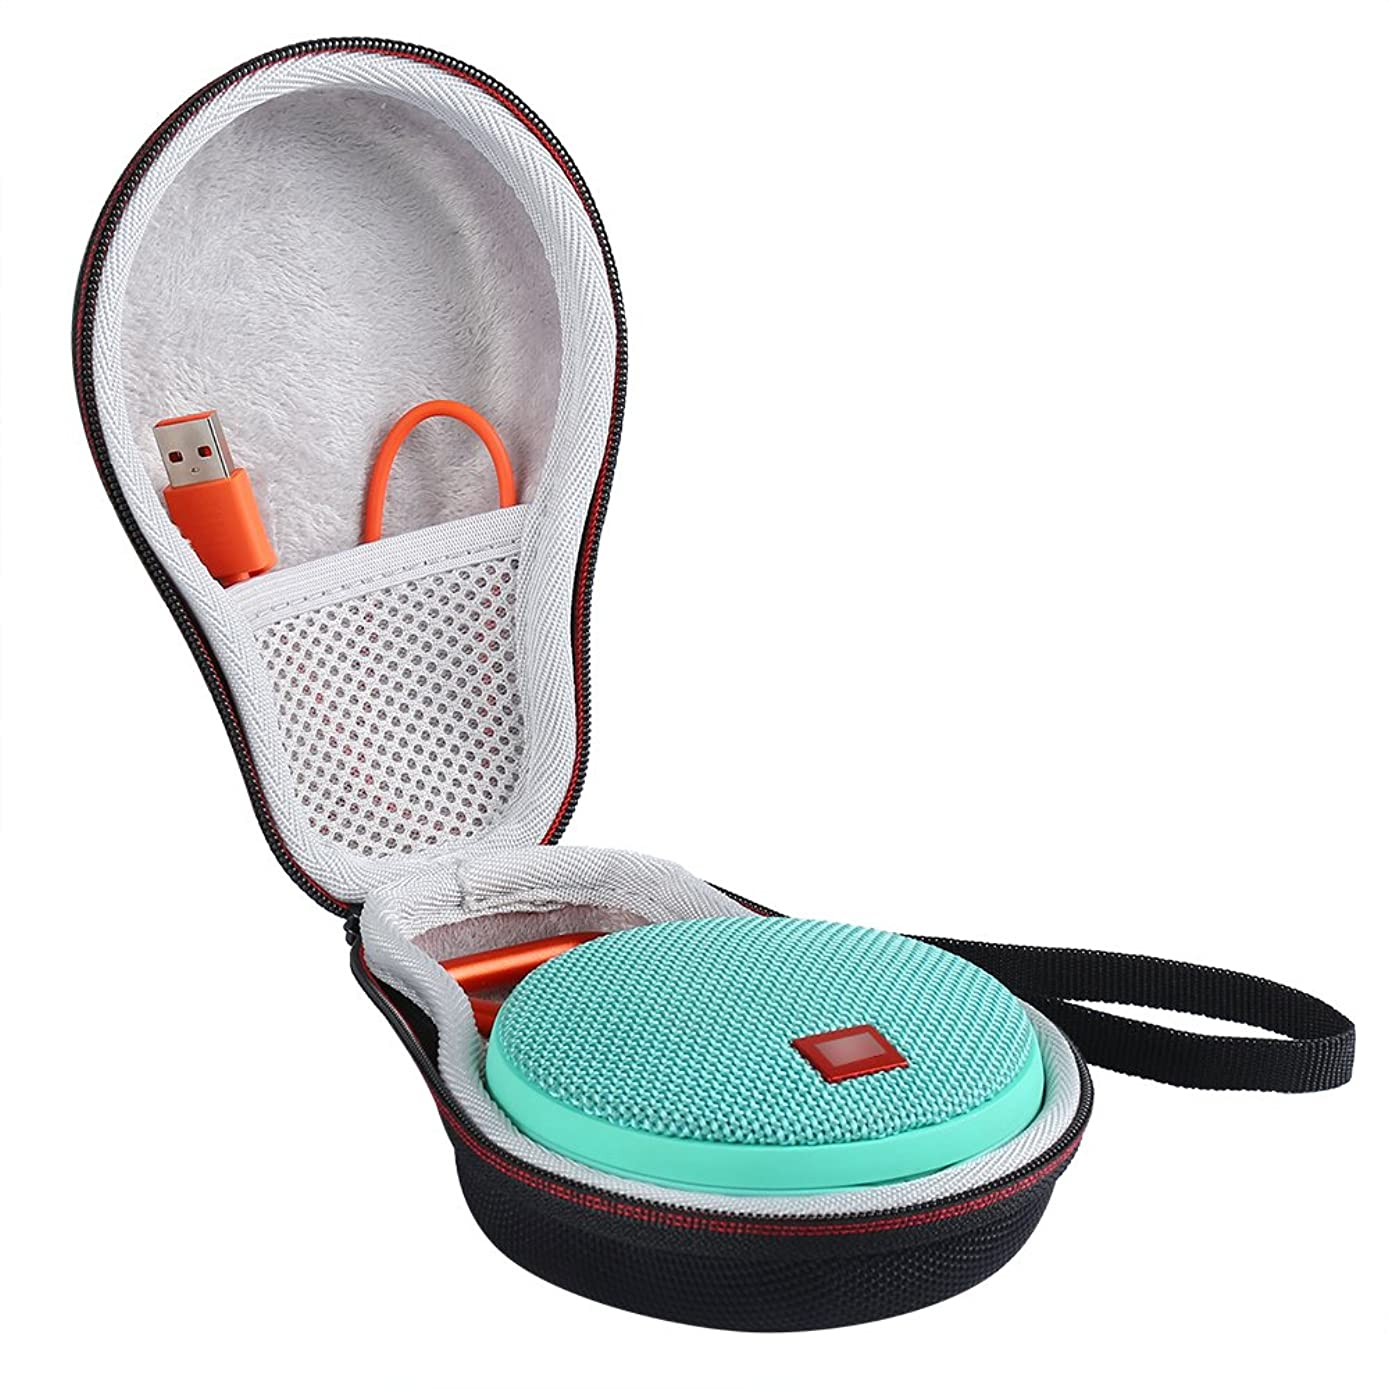 LuckyNV Carry Travel Protective Case For JBL Clip 2 Clip 3 Bluetooth Speaker Extra Space For Plug & Cables Black